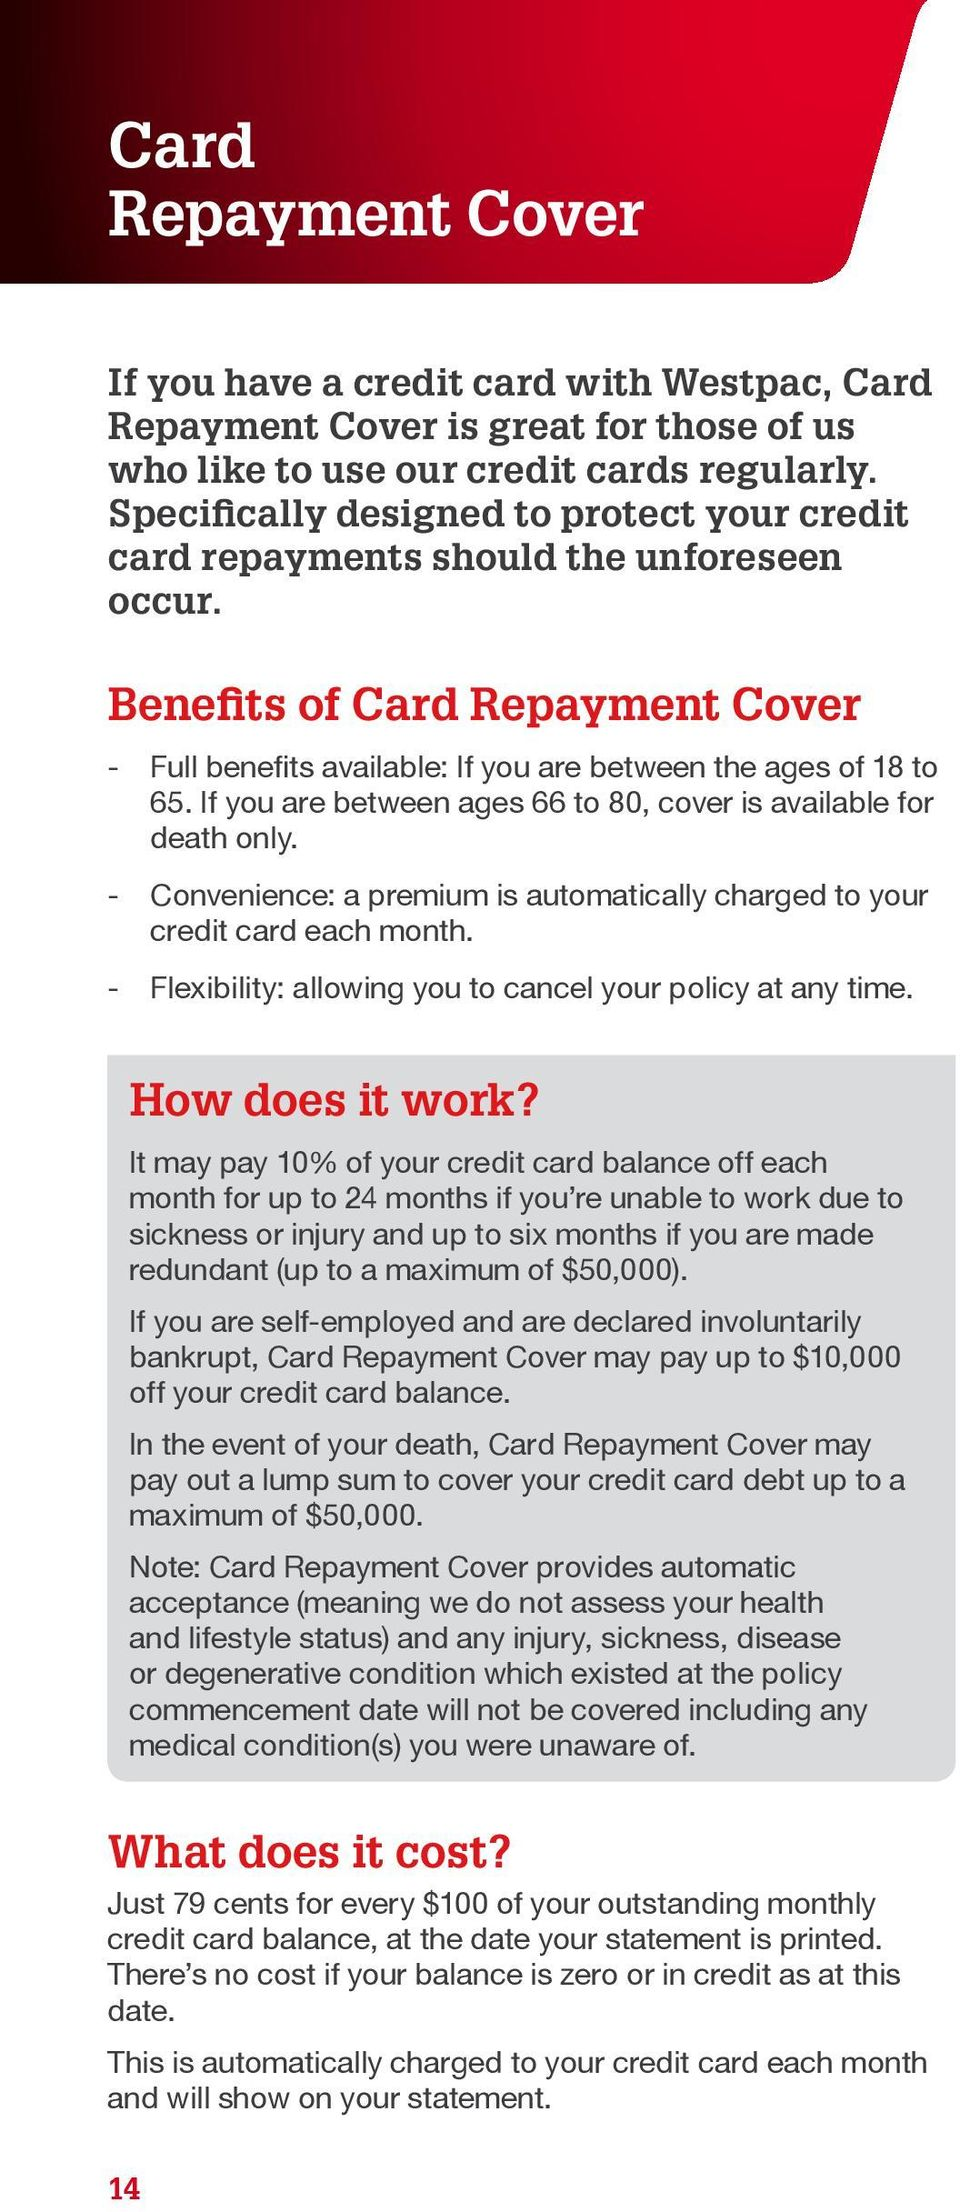 If you are between ages 66 to 80, cover is available for death only. - Convenience: a premium is automatically charged to your credit card each month.